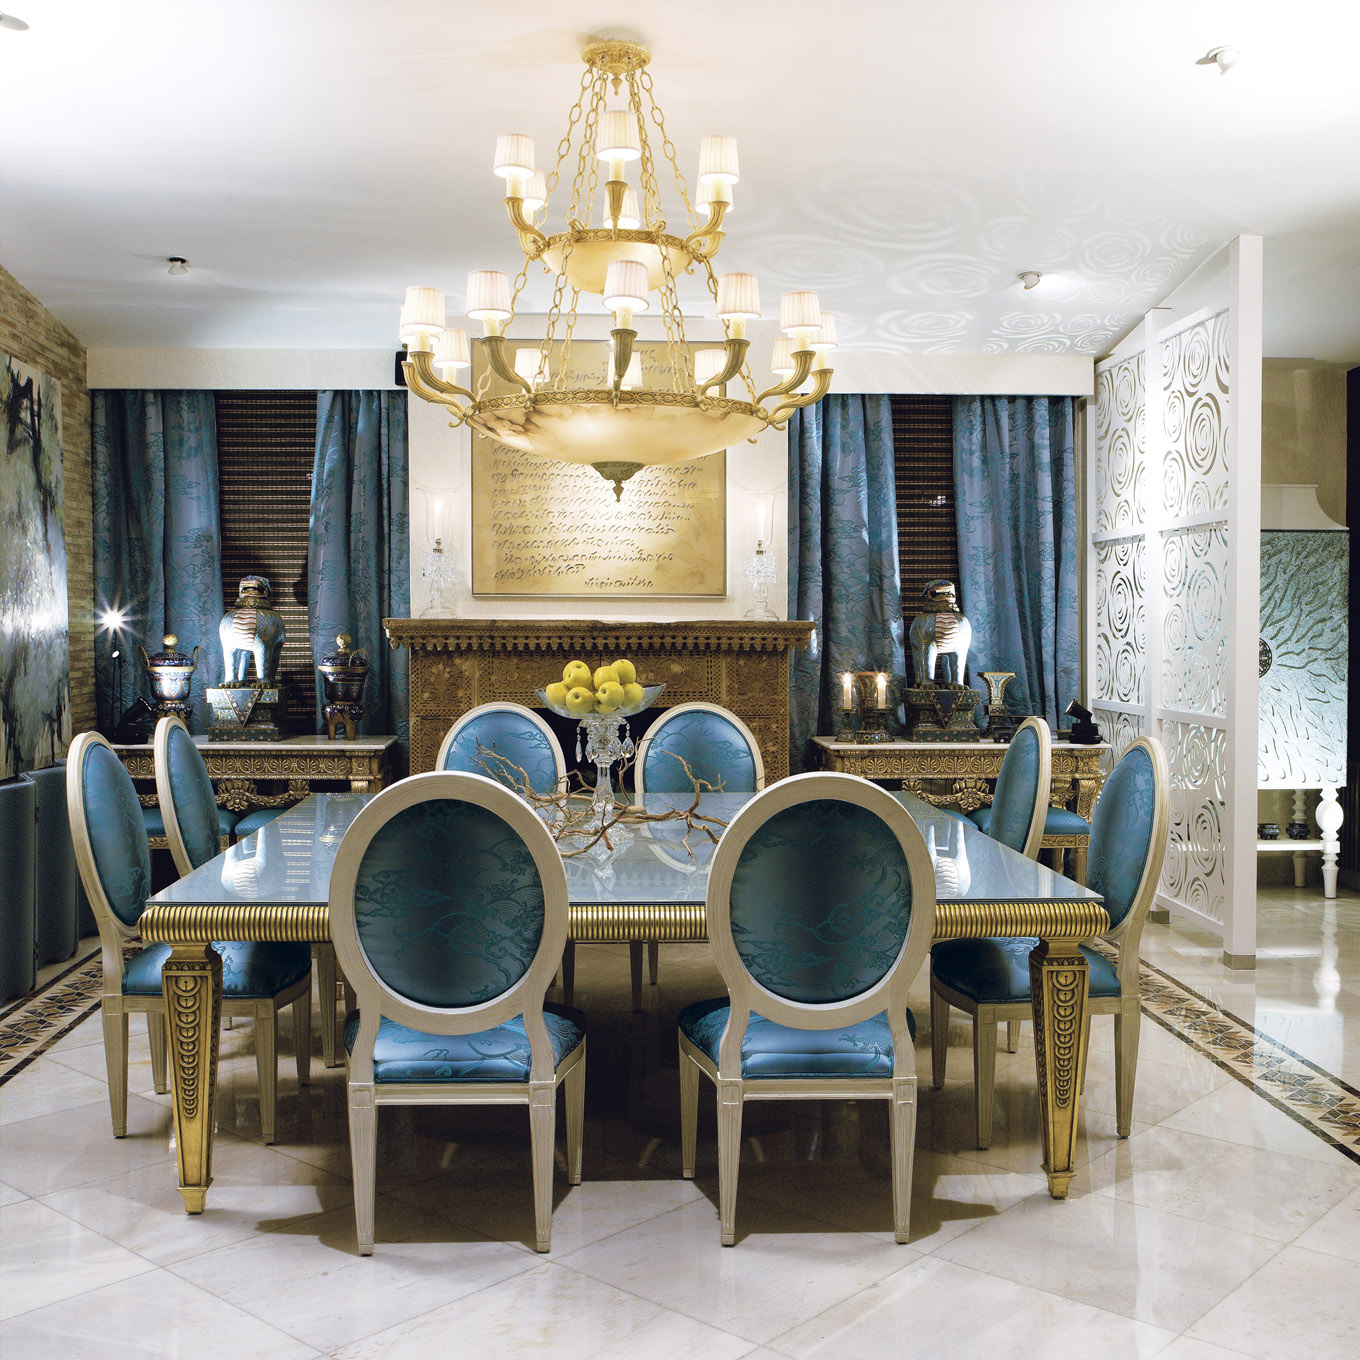 Luxurious Dining Room Sets: Luxury Dining Room Sets